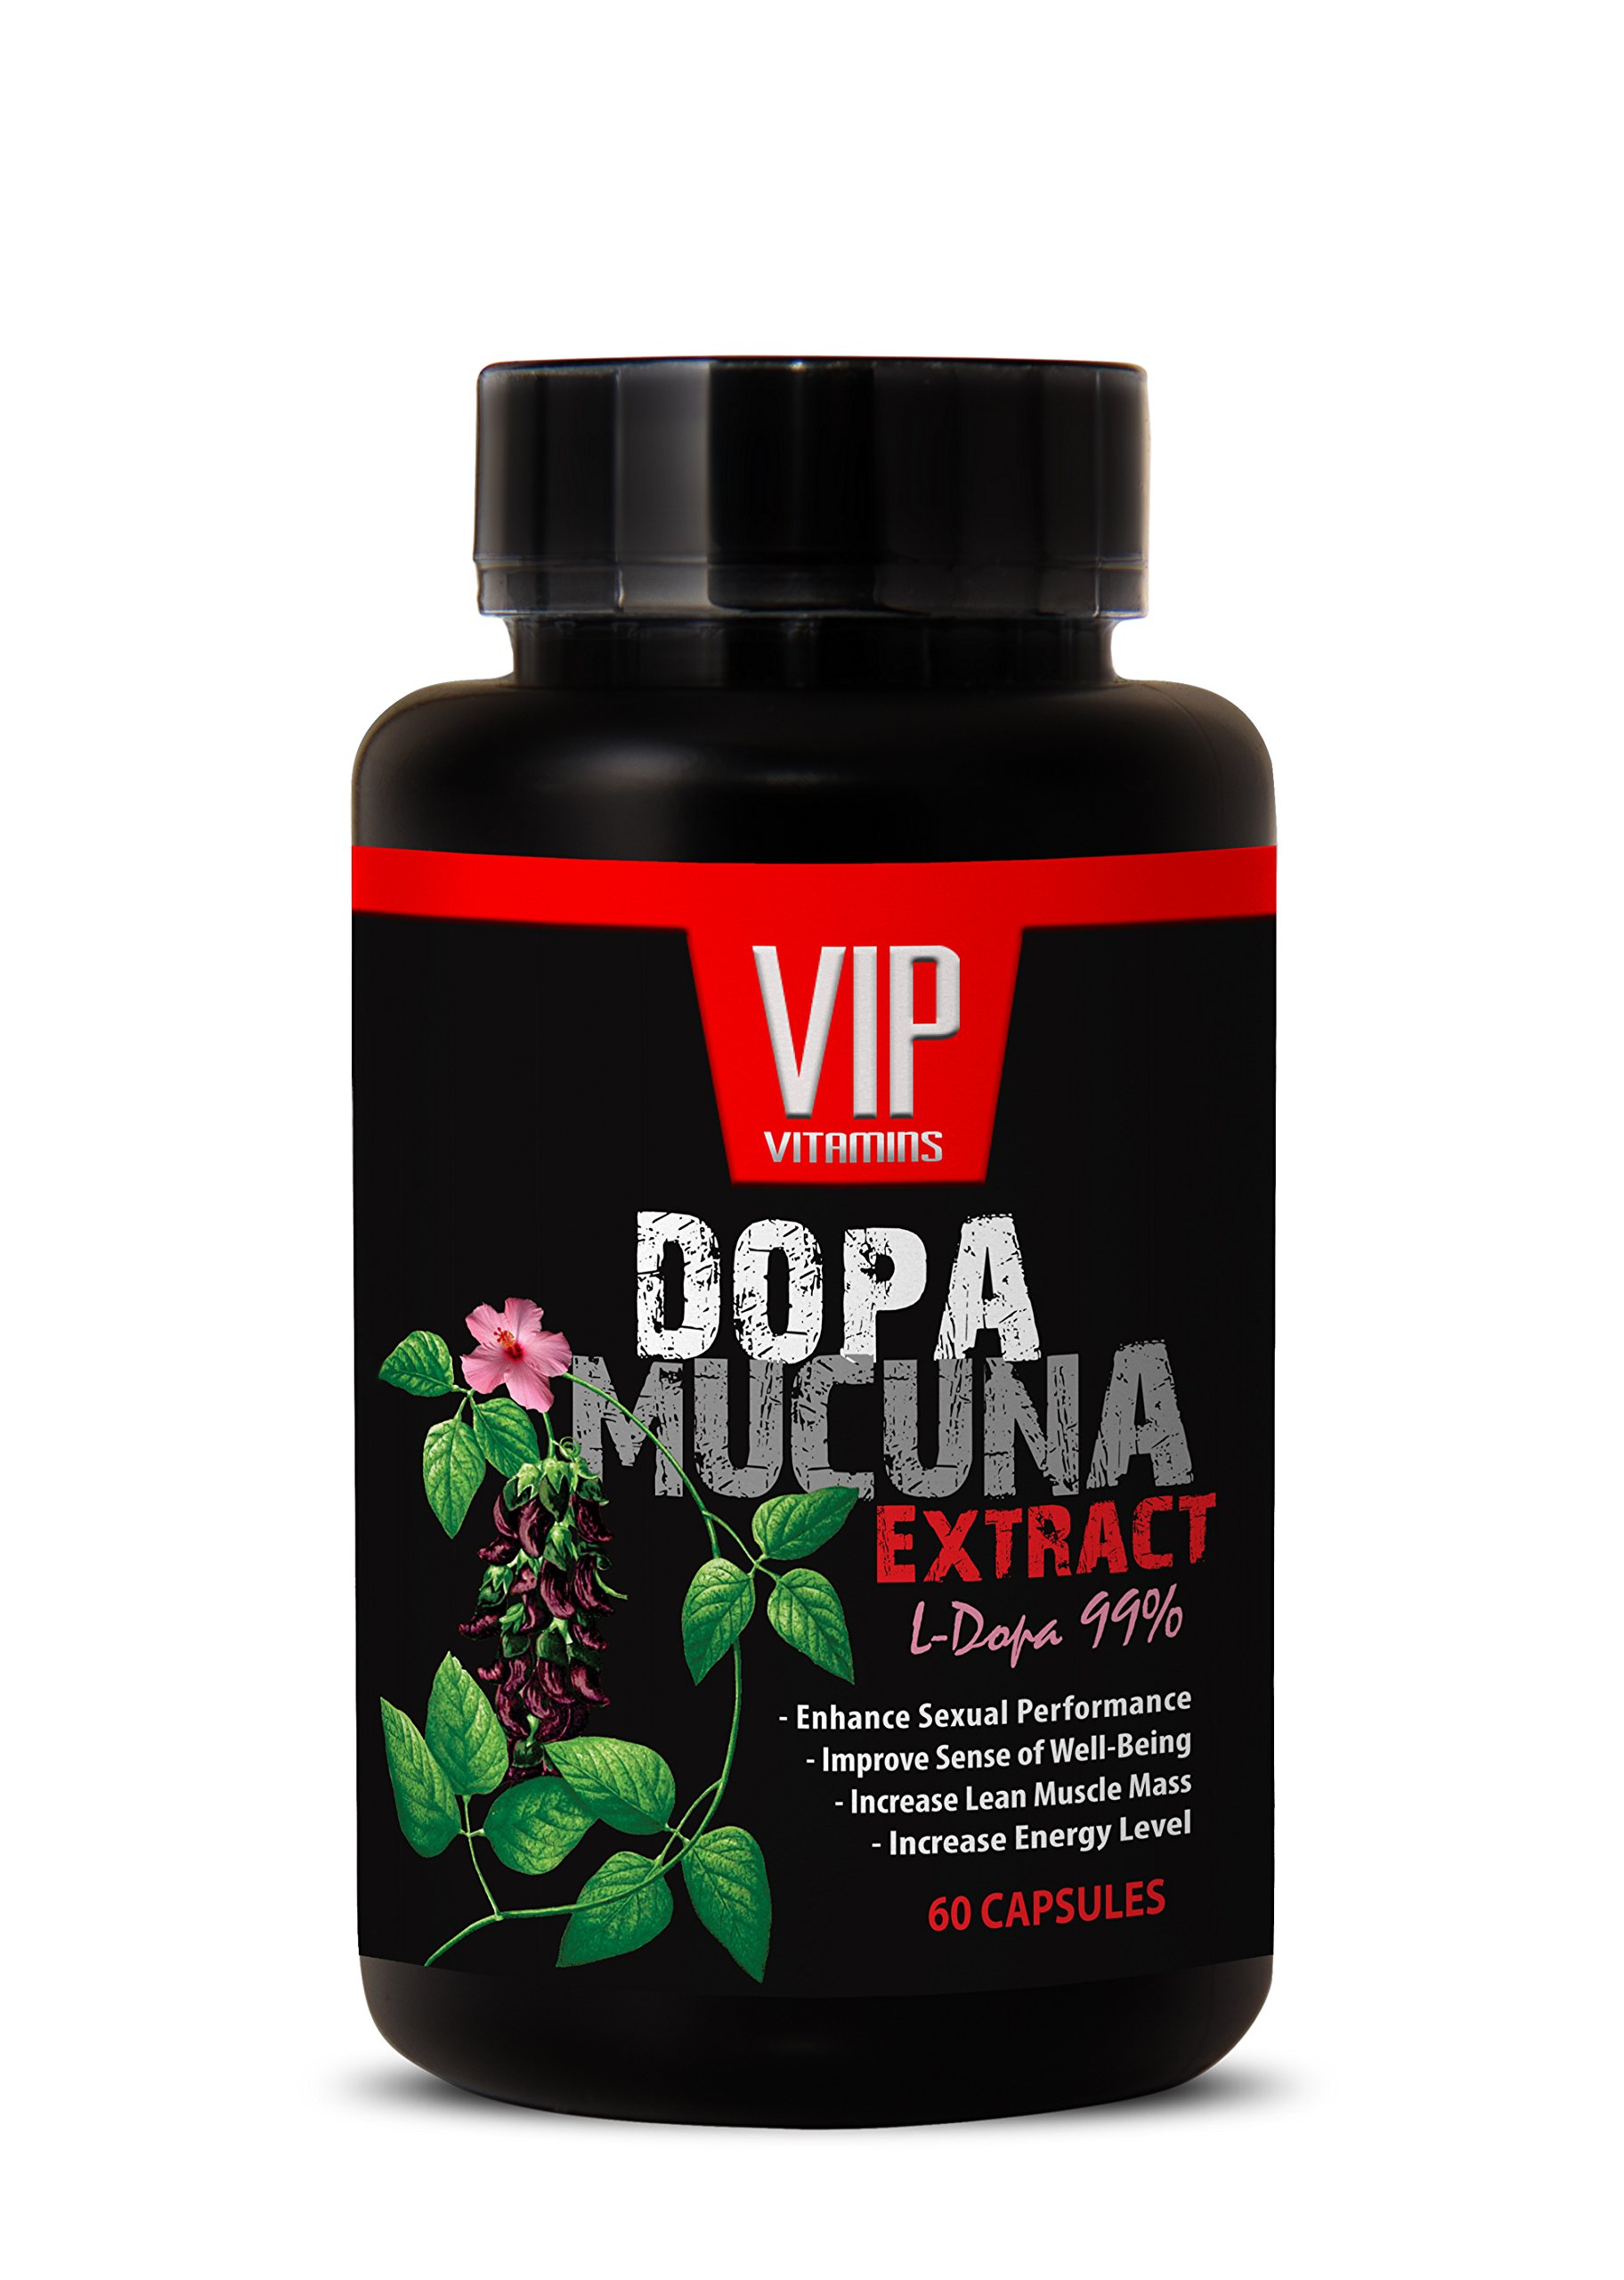 Sexual enhancement pills for men - DOPA MUCUNA EXTRACT (L-DOPA 99%) - Pure mucuna pruriens - 1 Bottle 60 Capsules by VIP VITAMINS (Image #1)